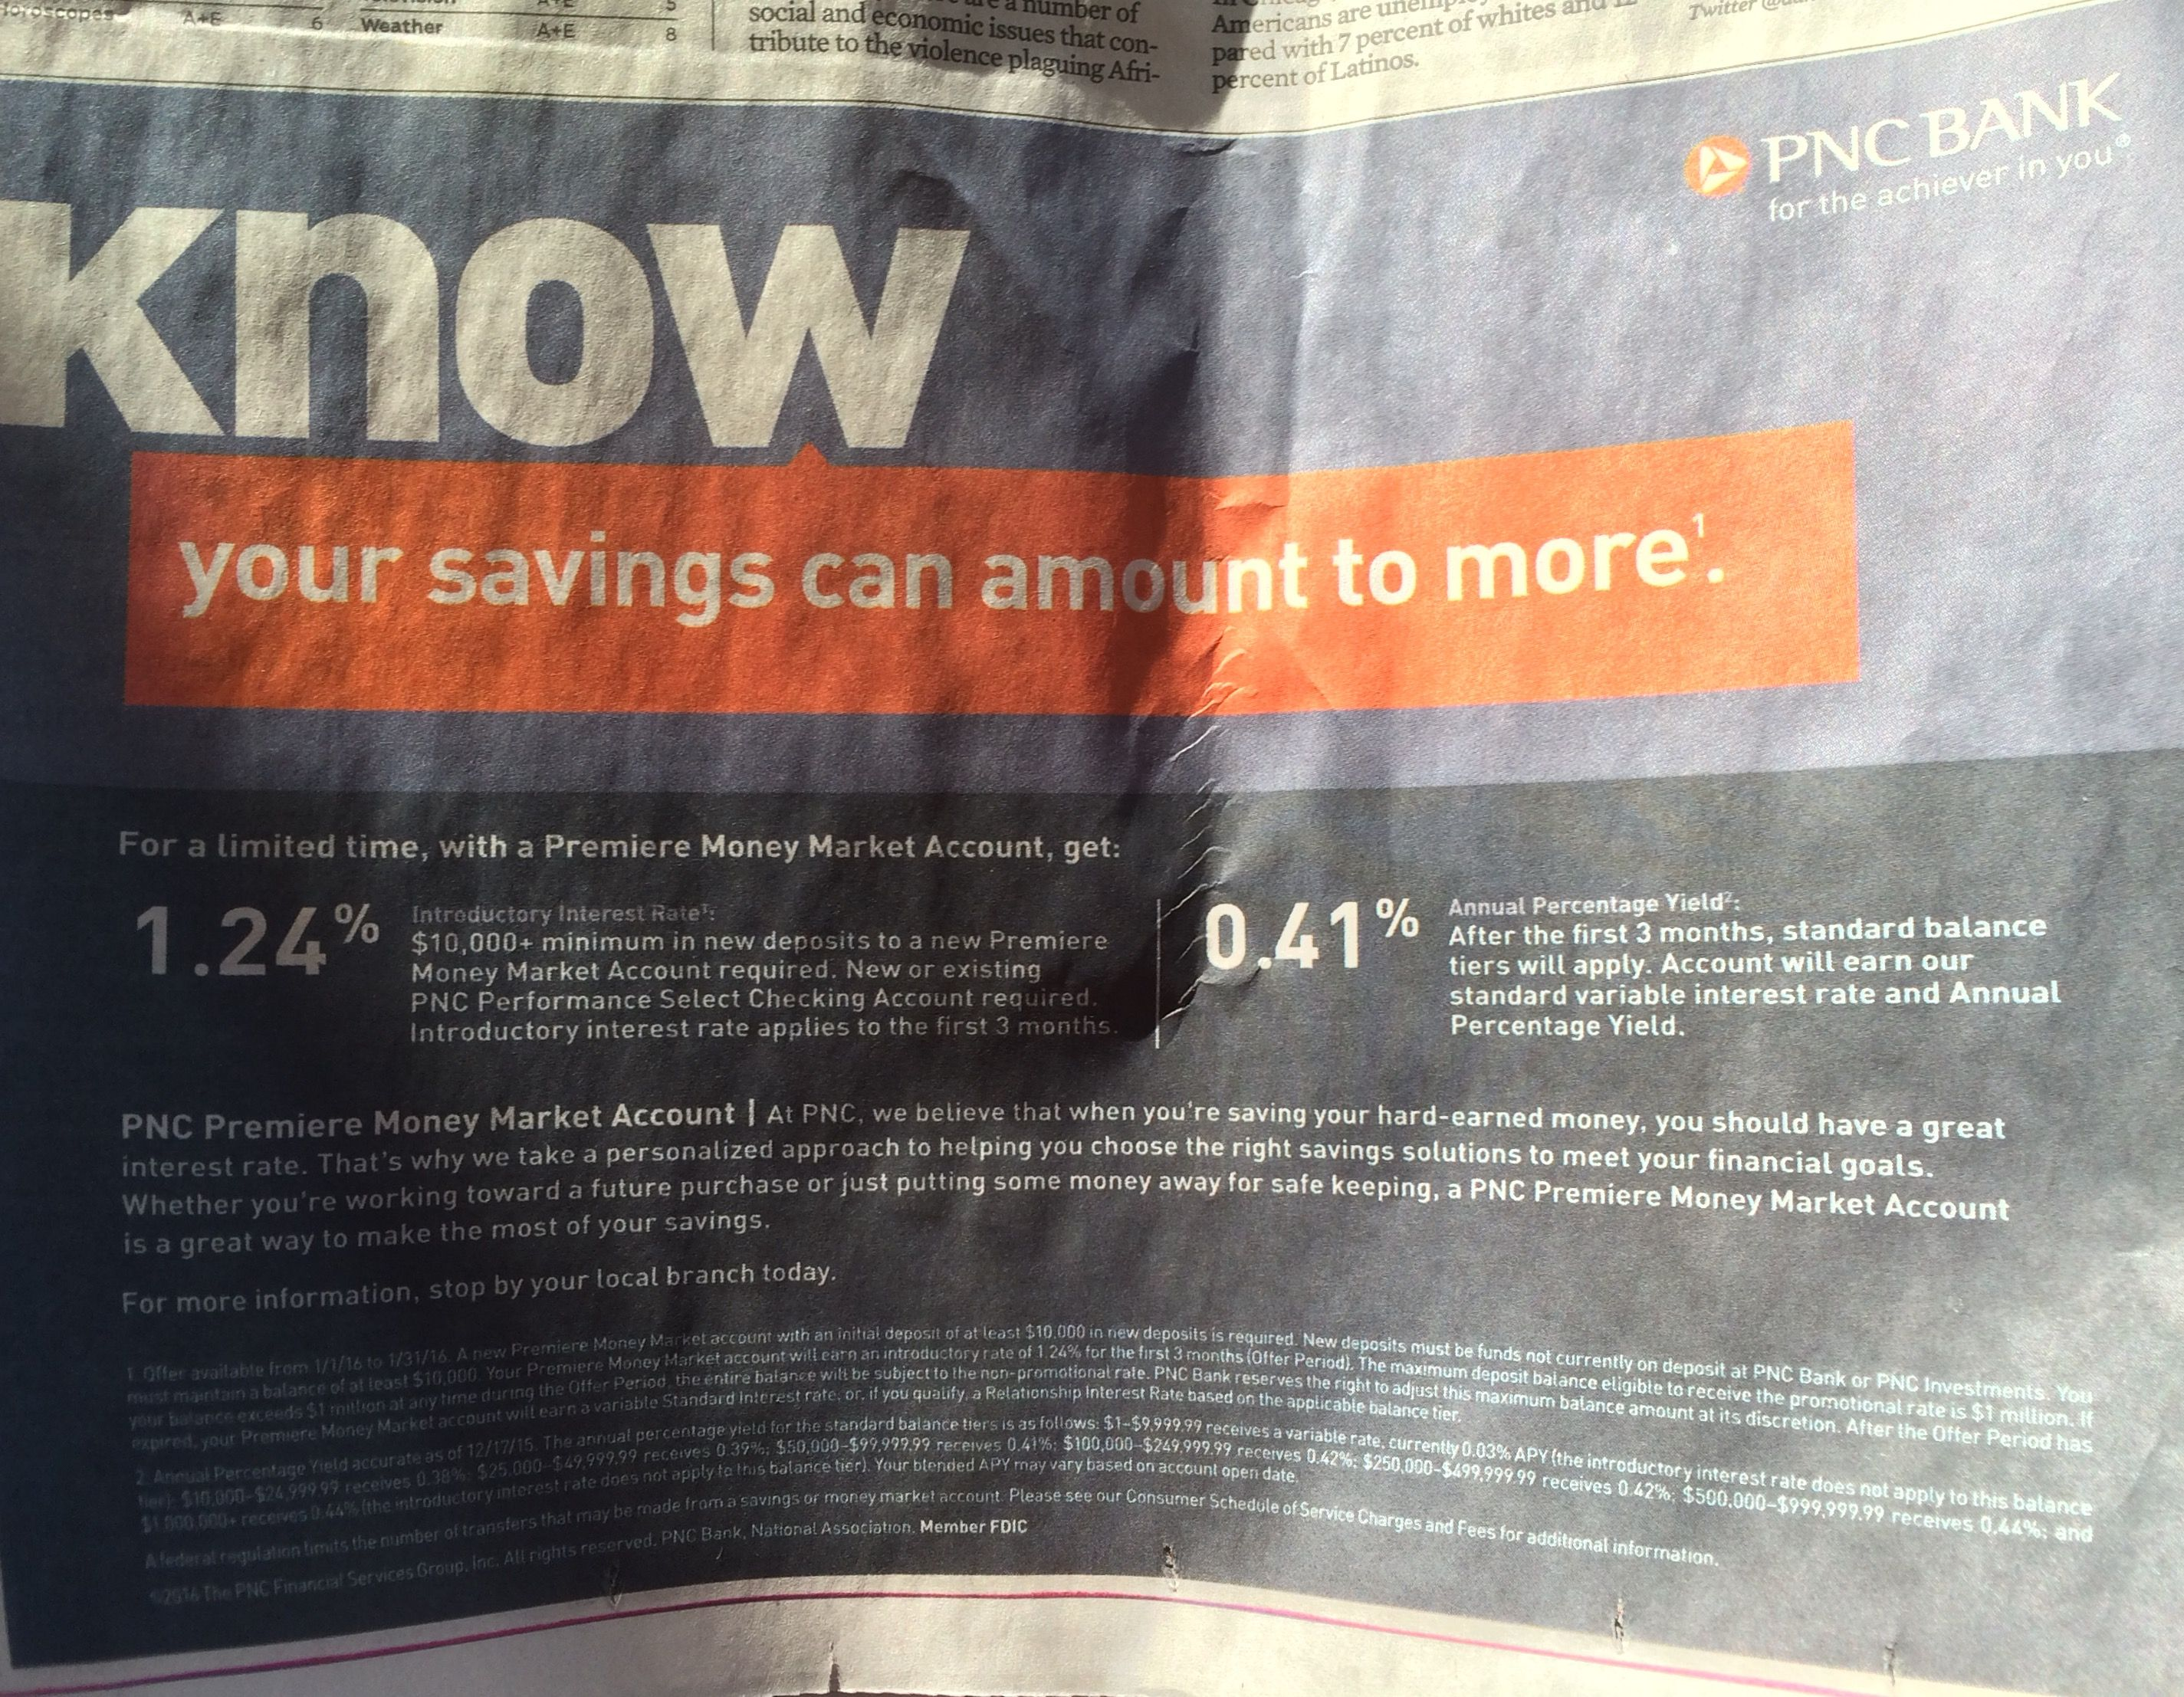 PNC Bank touts money-market account w/ introductory rate of